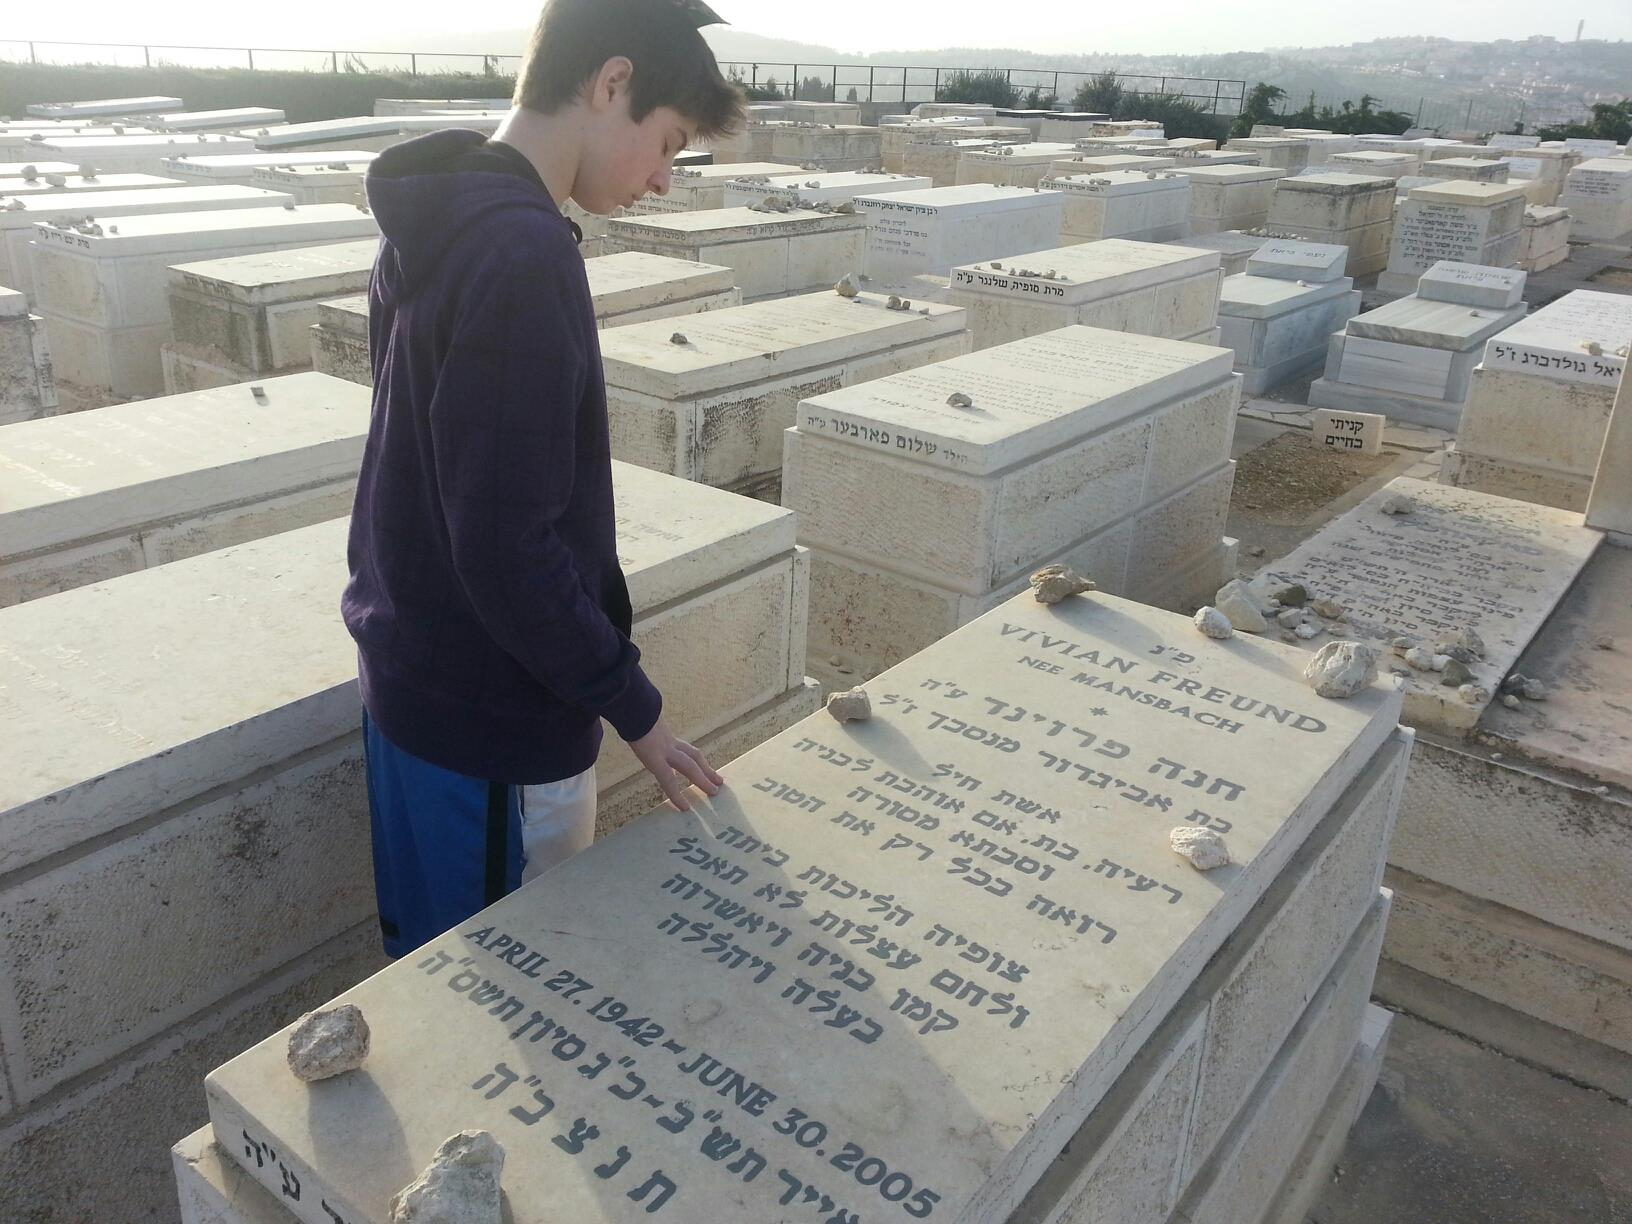 Visiting my grandmother's grave on Har HaMenuchot